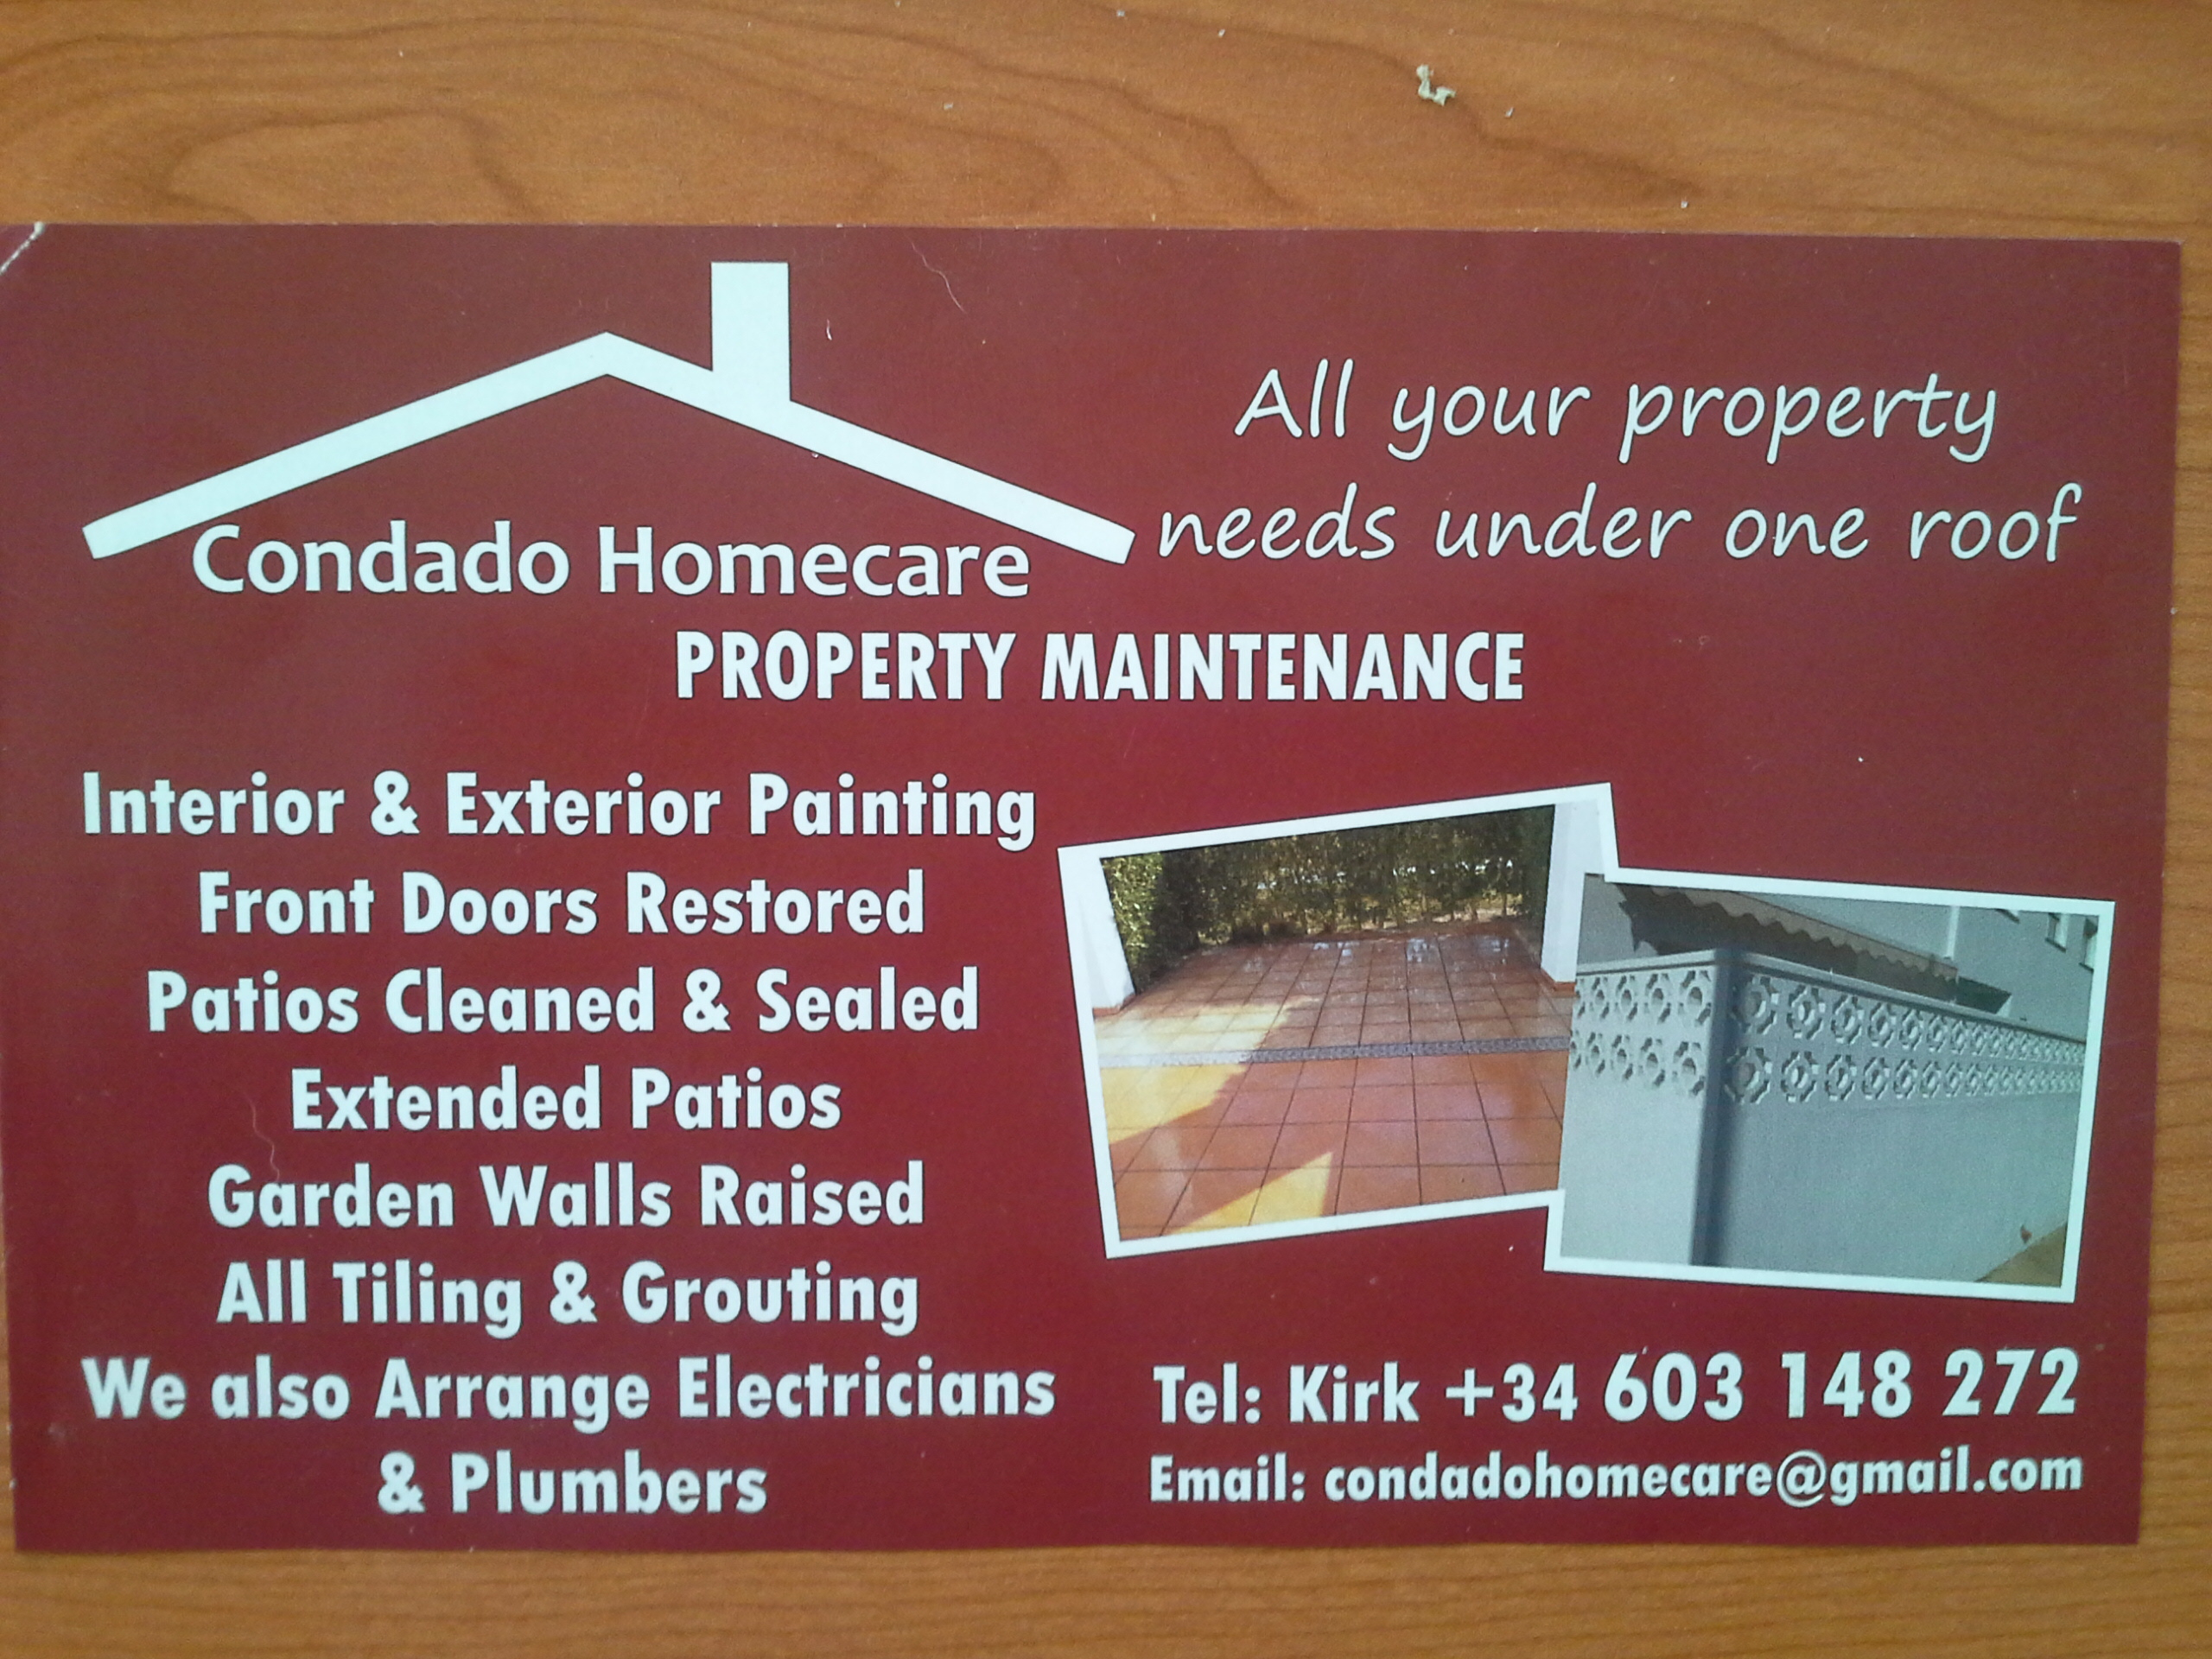 Condado Homecare Property Maintenance